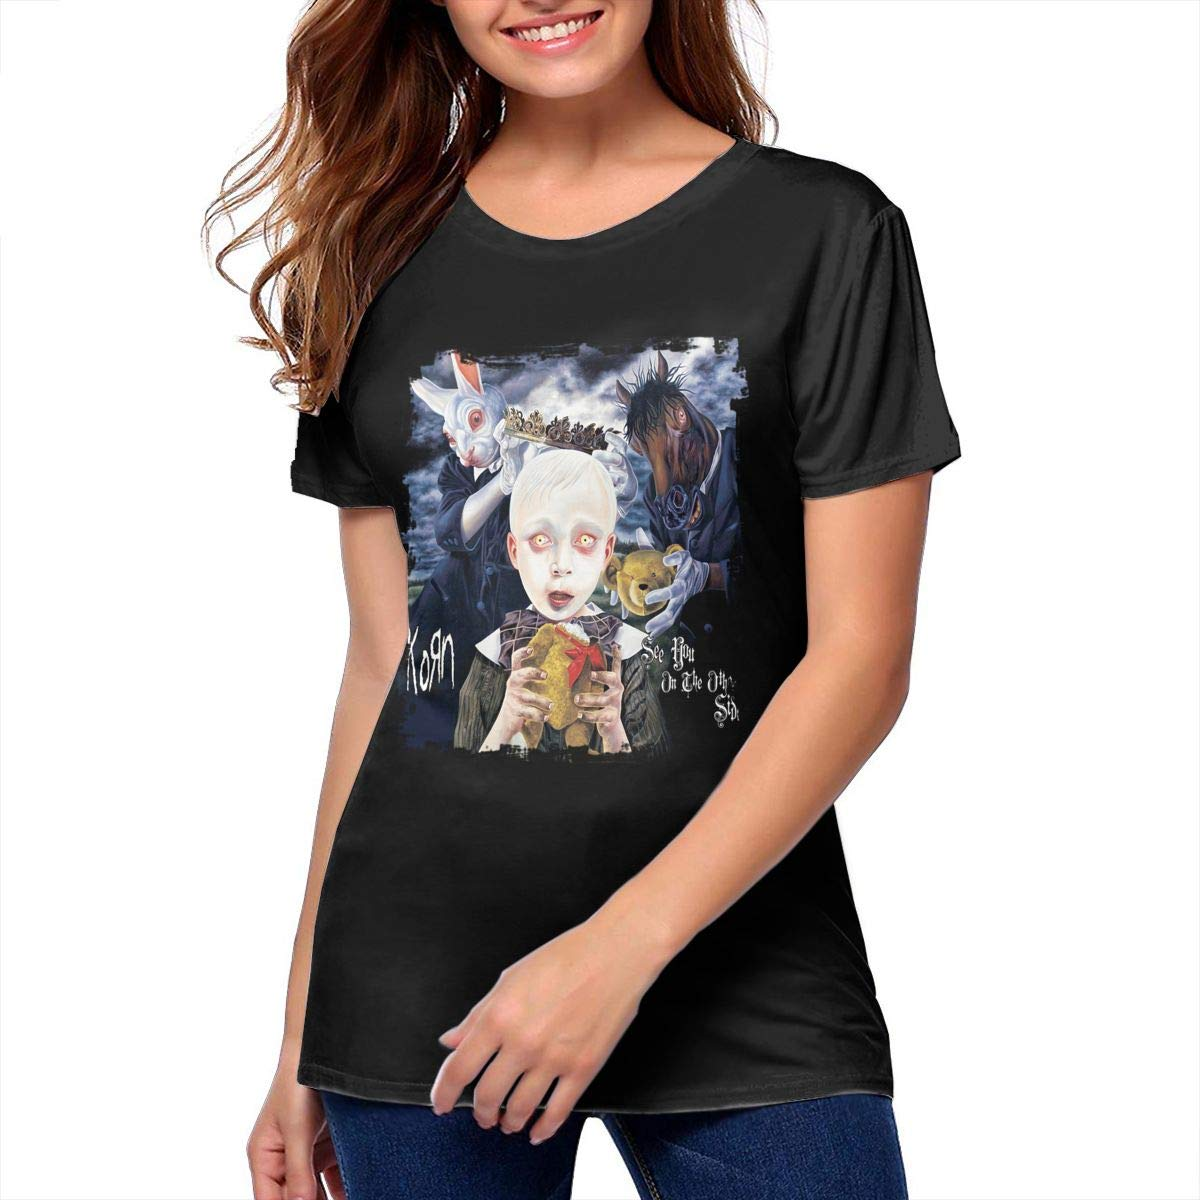 Korn See You On The Other Side Cotton Womens T Shirts Funny Women Top Black